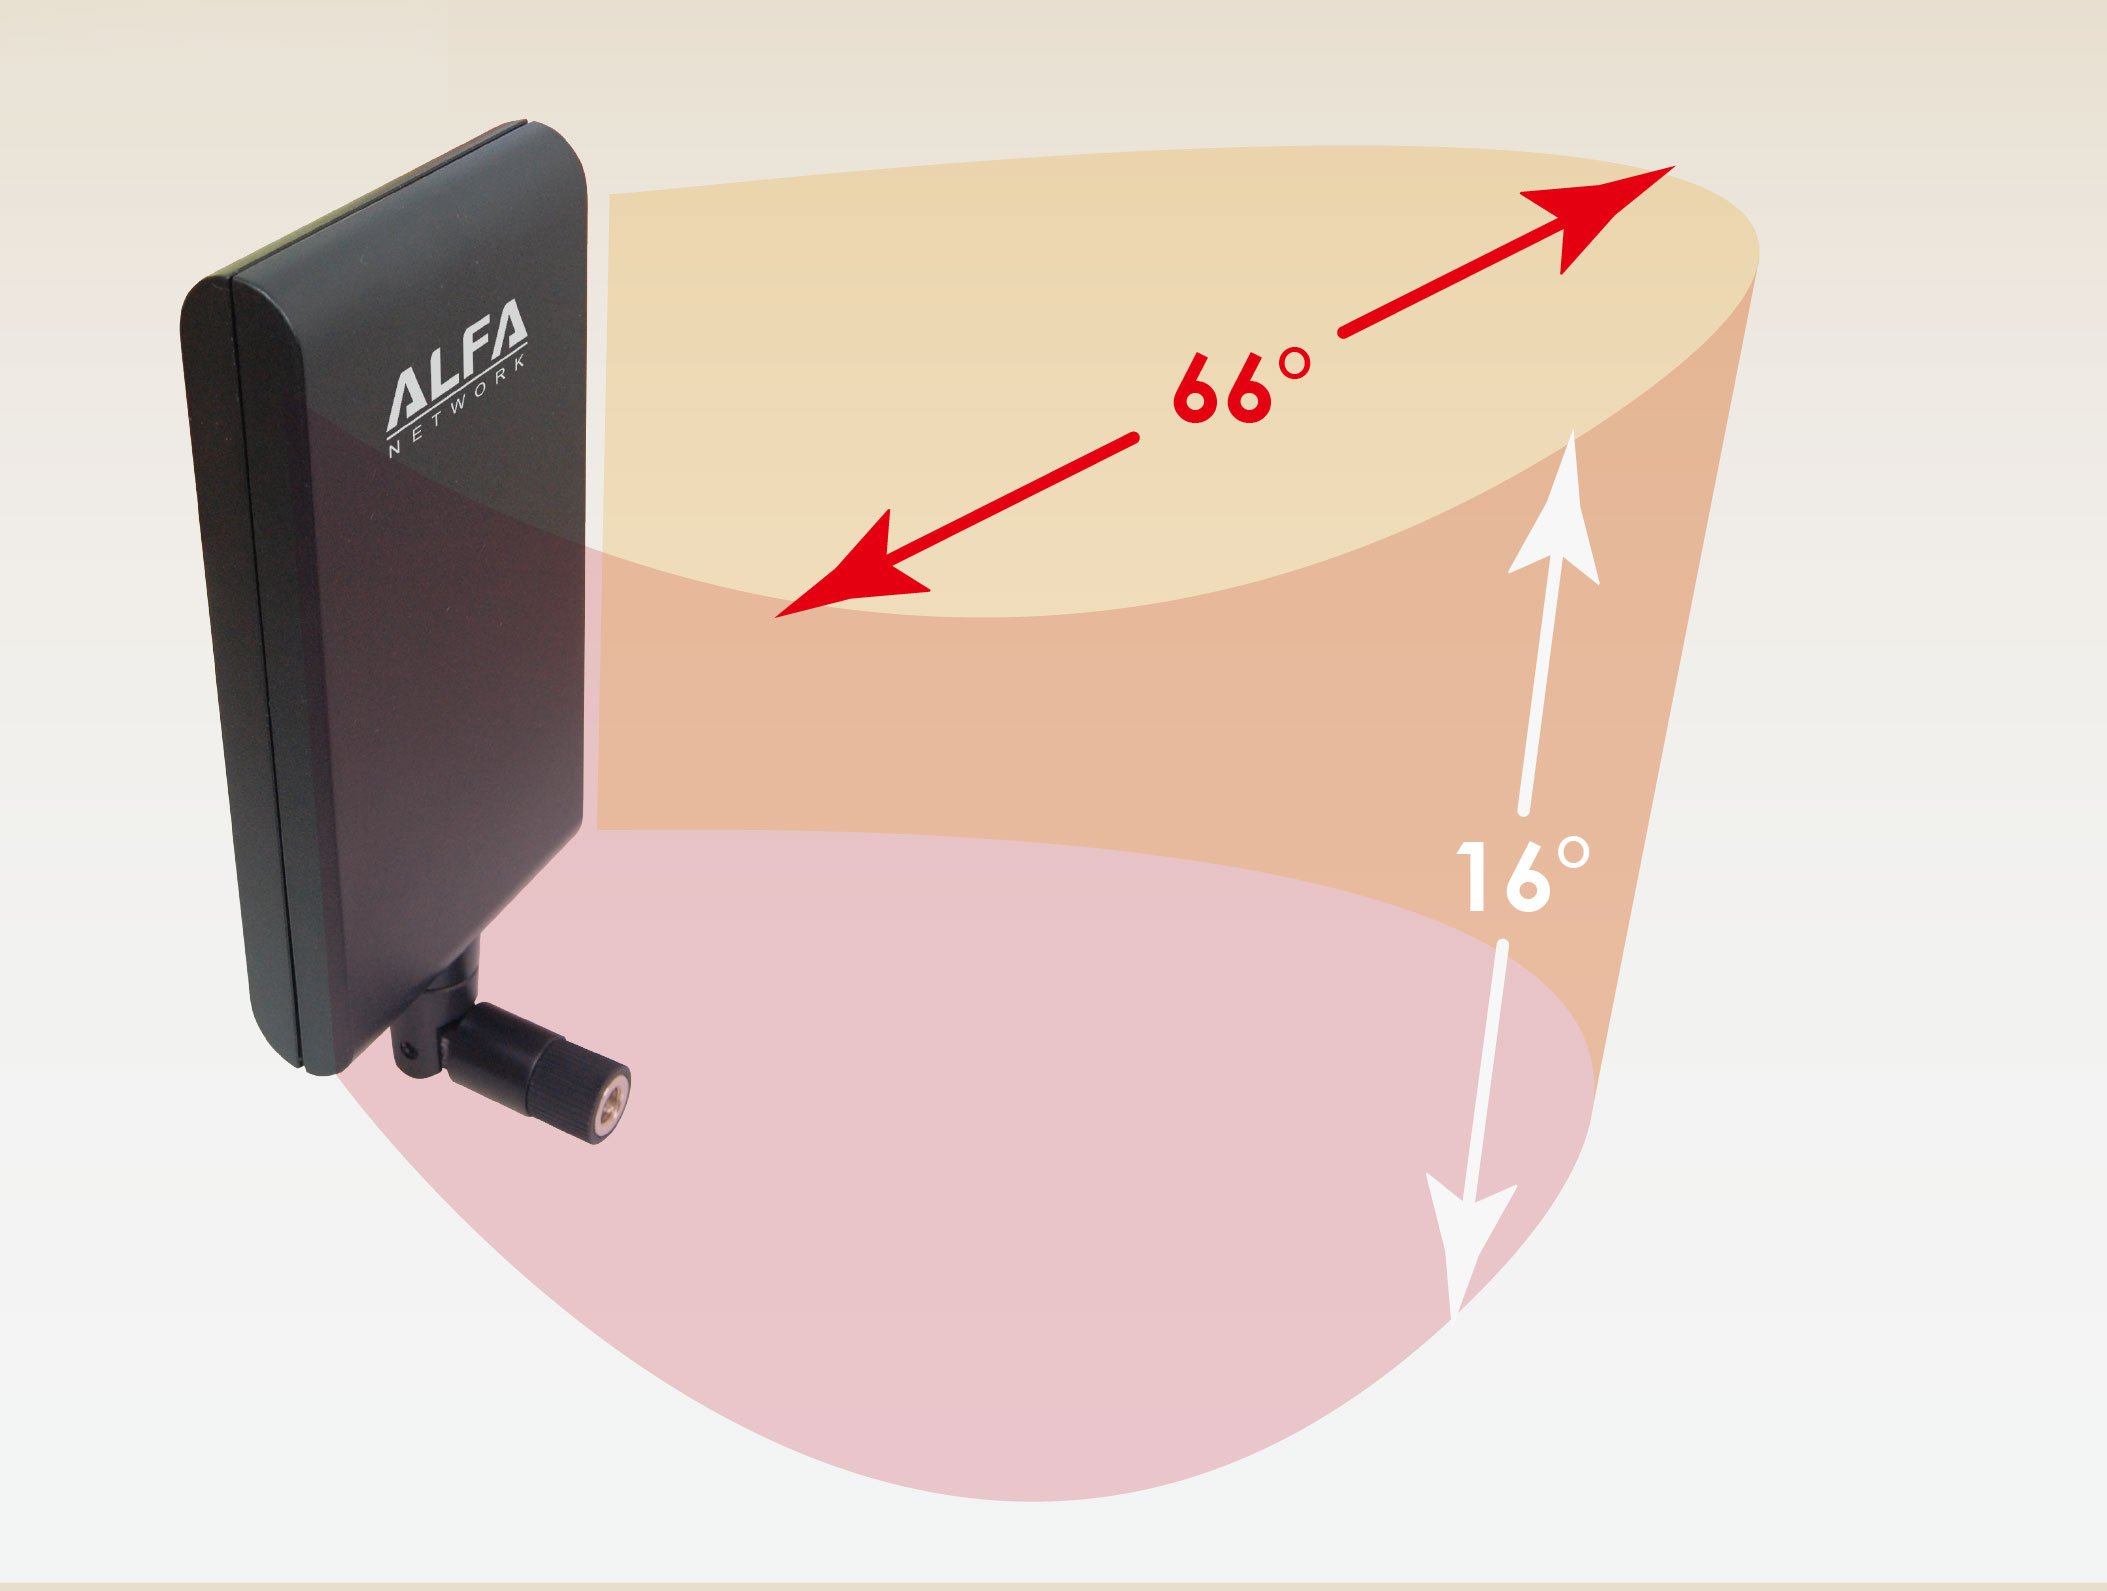 Alfa APA-M25 dual band 2.4GHz/5GHz 10dBi high gain directional indoor panel antenna with RP-SMA connector (compare to Asus WL-ANT-157) by ALFA (Image #5)